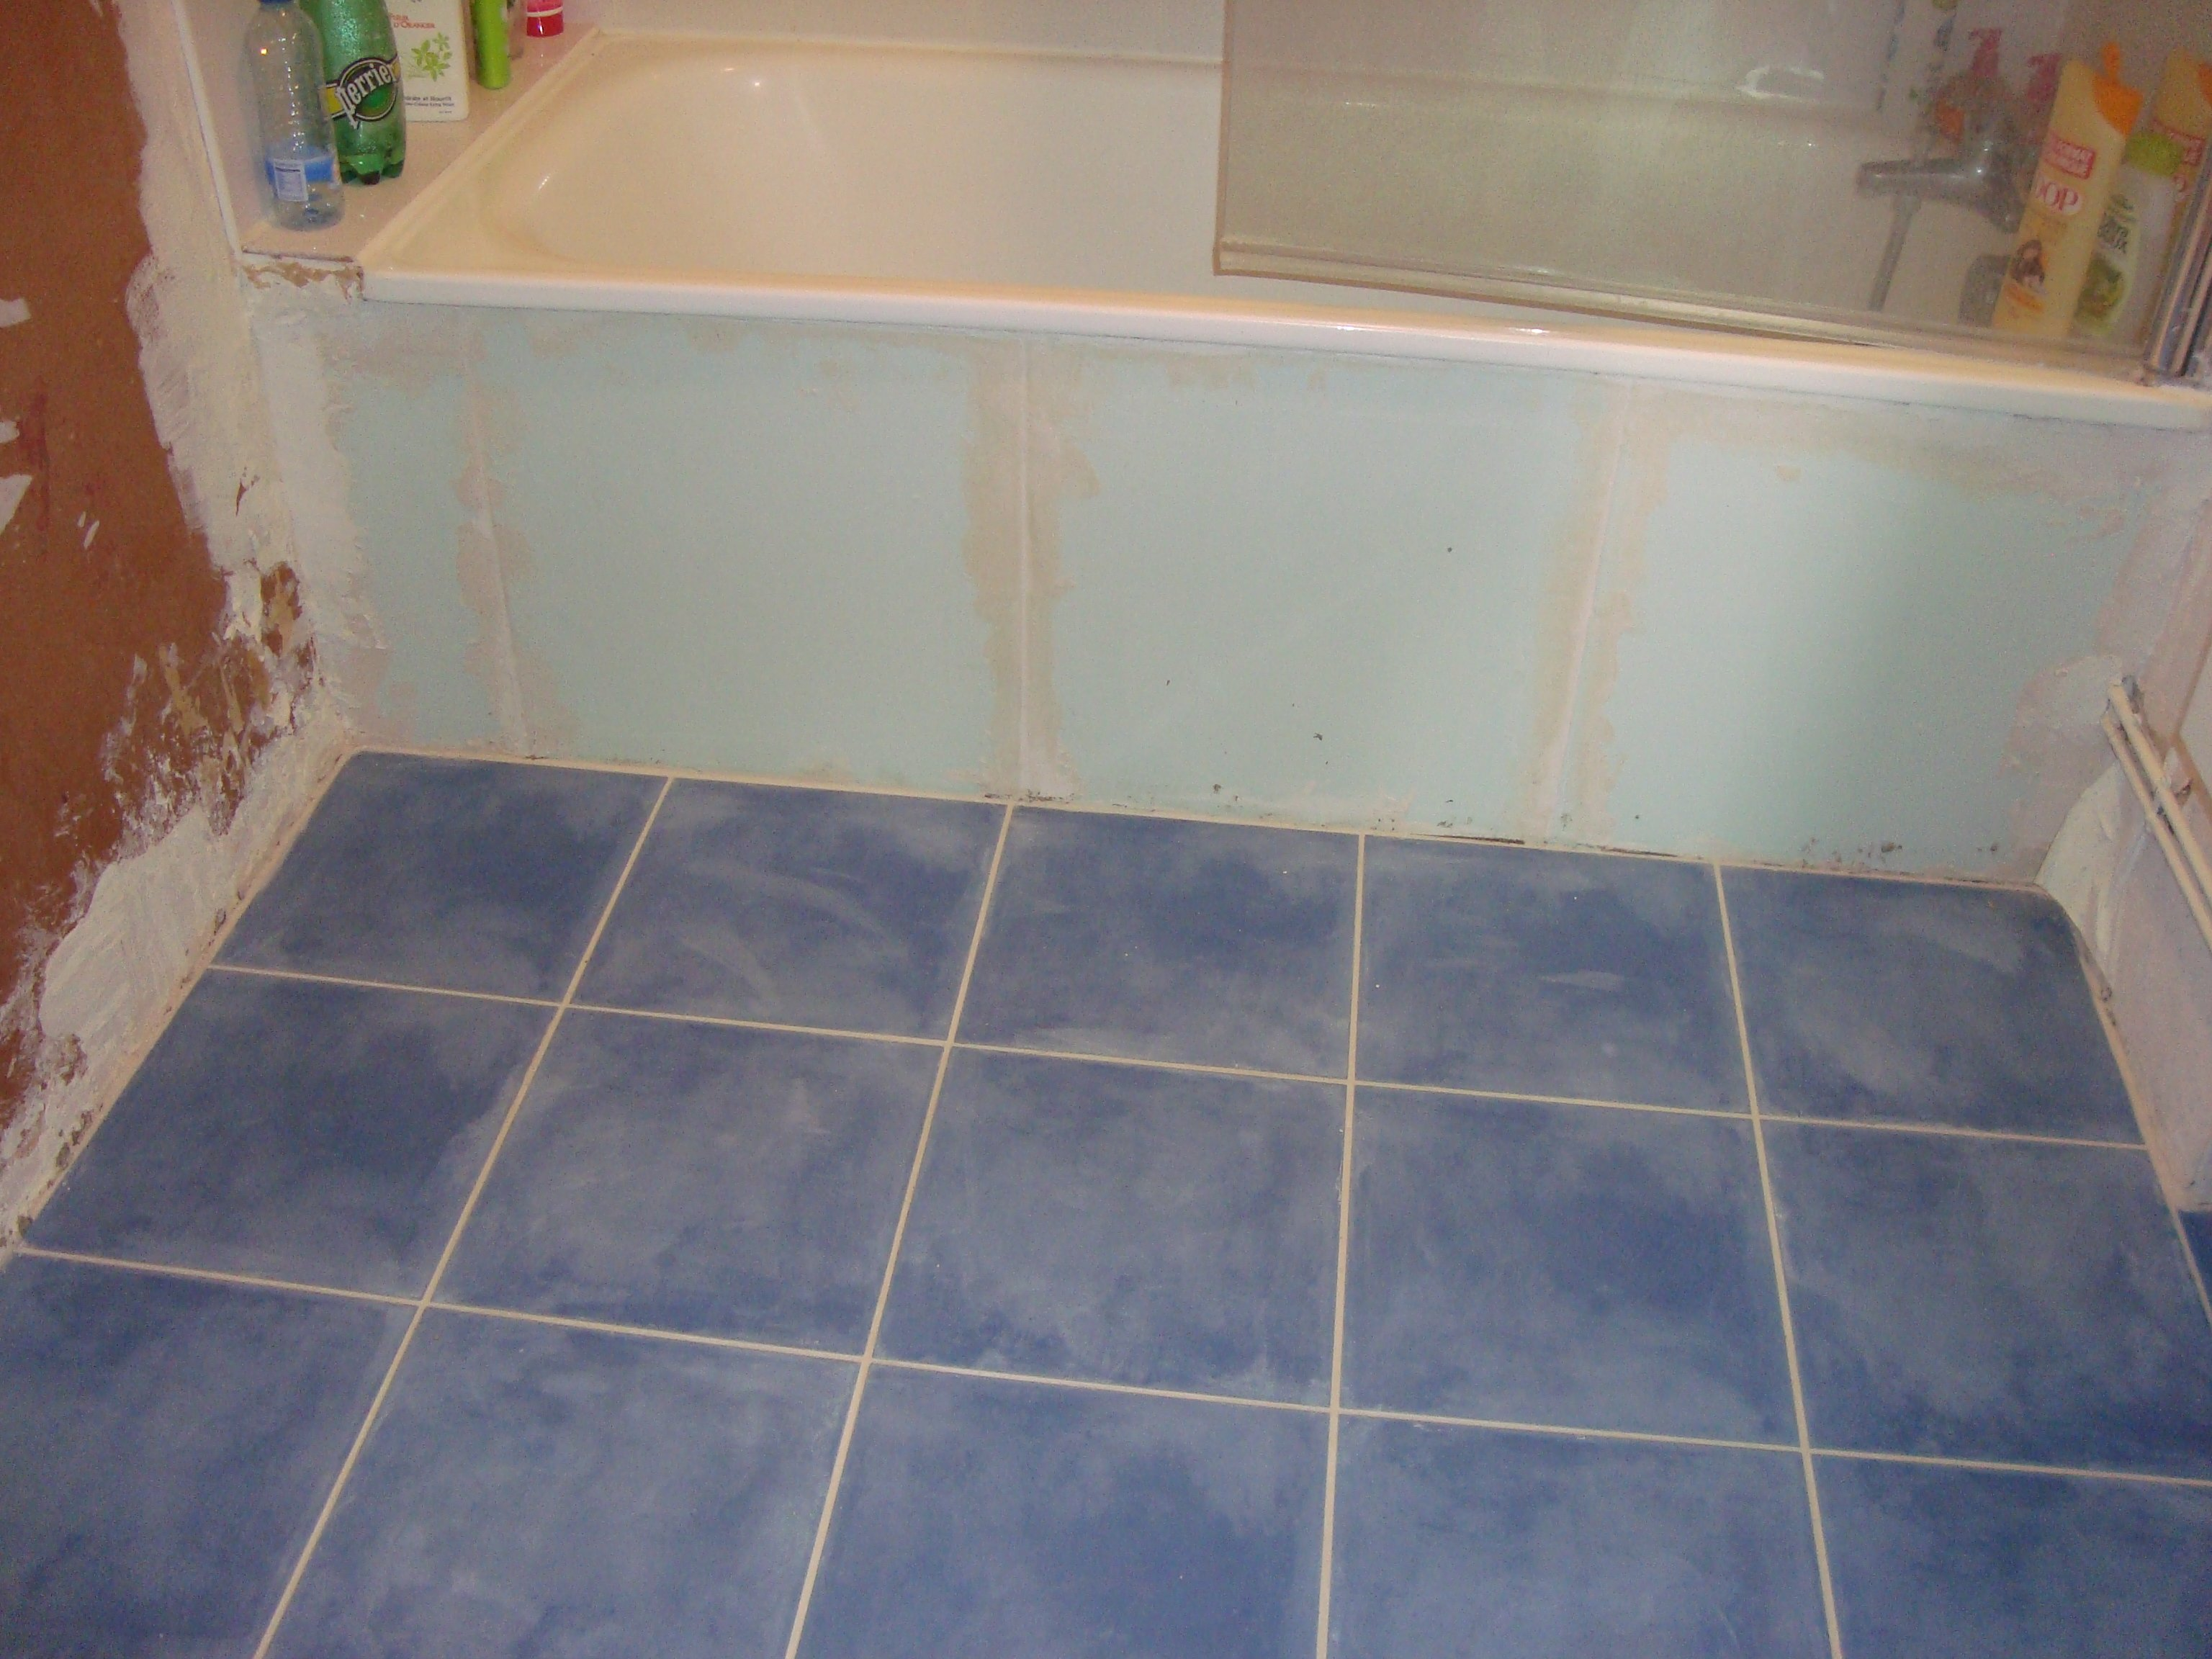 R novation d un appartement la salle de bain for Joint pour carrelage blanc